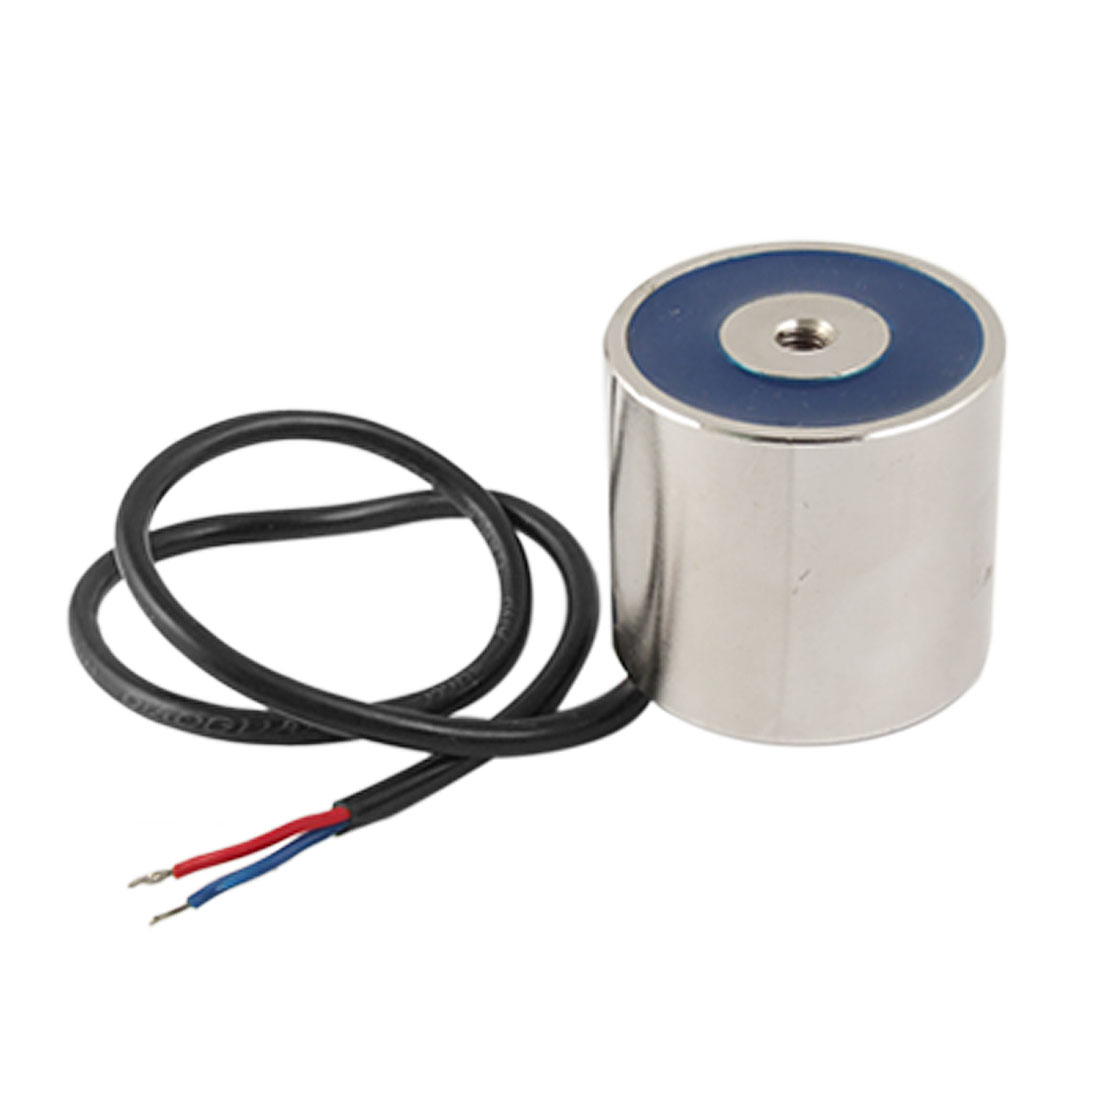 24V 45mm OD Sucked Type Cylindrical Electromagnet 30Kg Solenoid